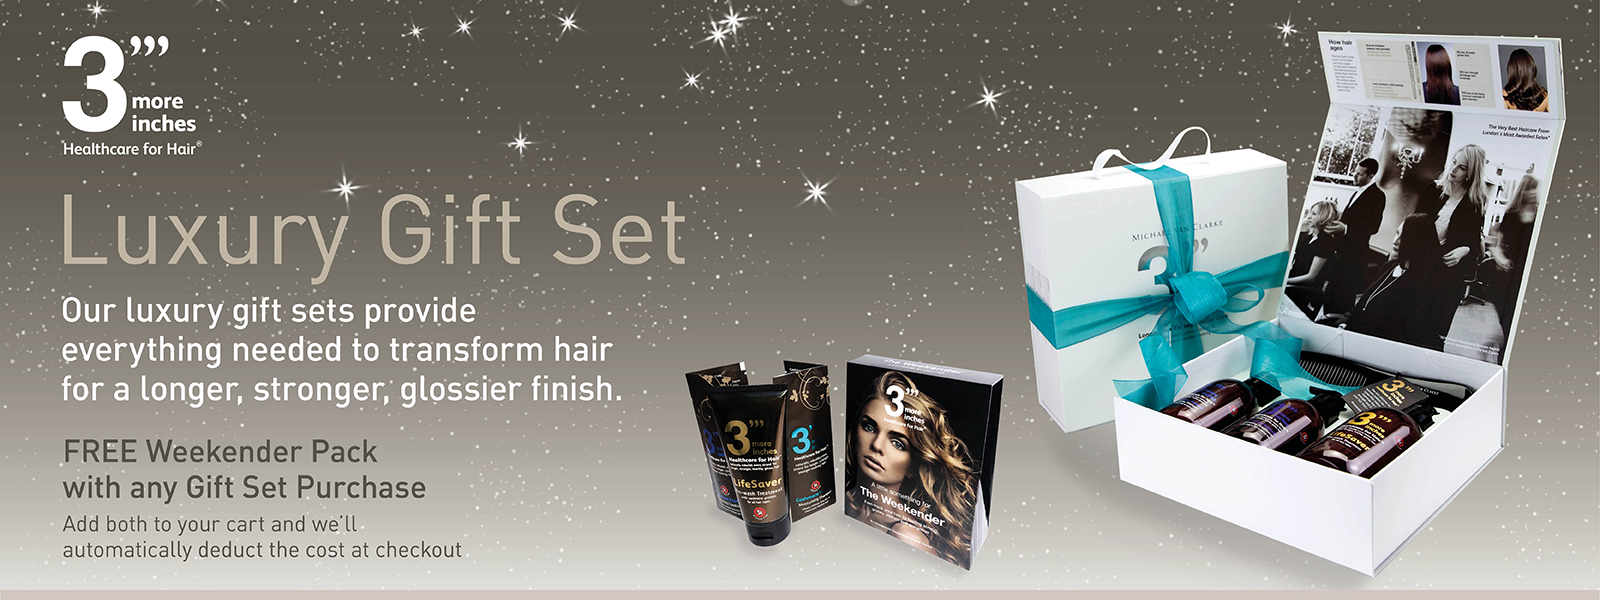 Free weekender with every gift set purchase